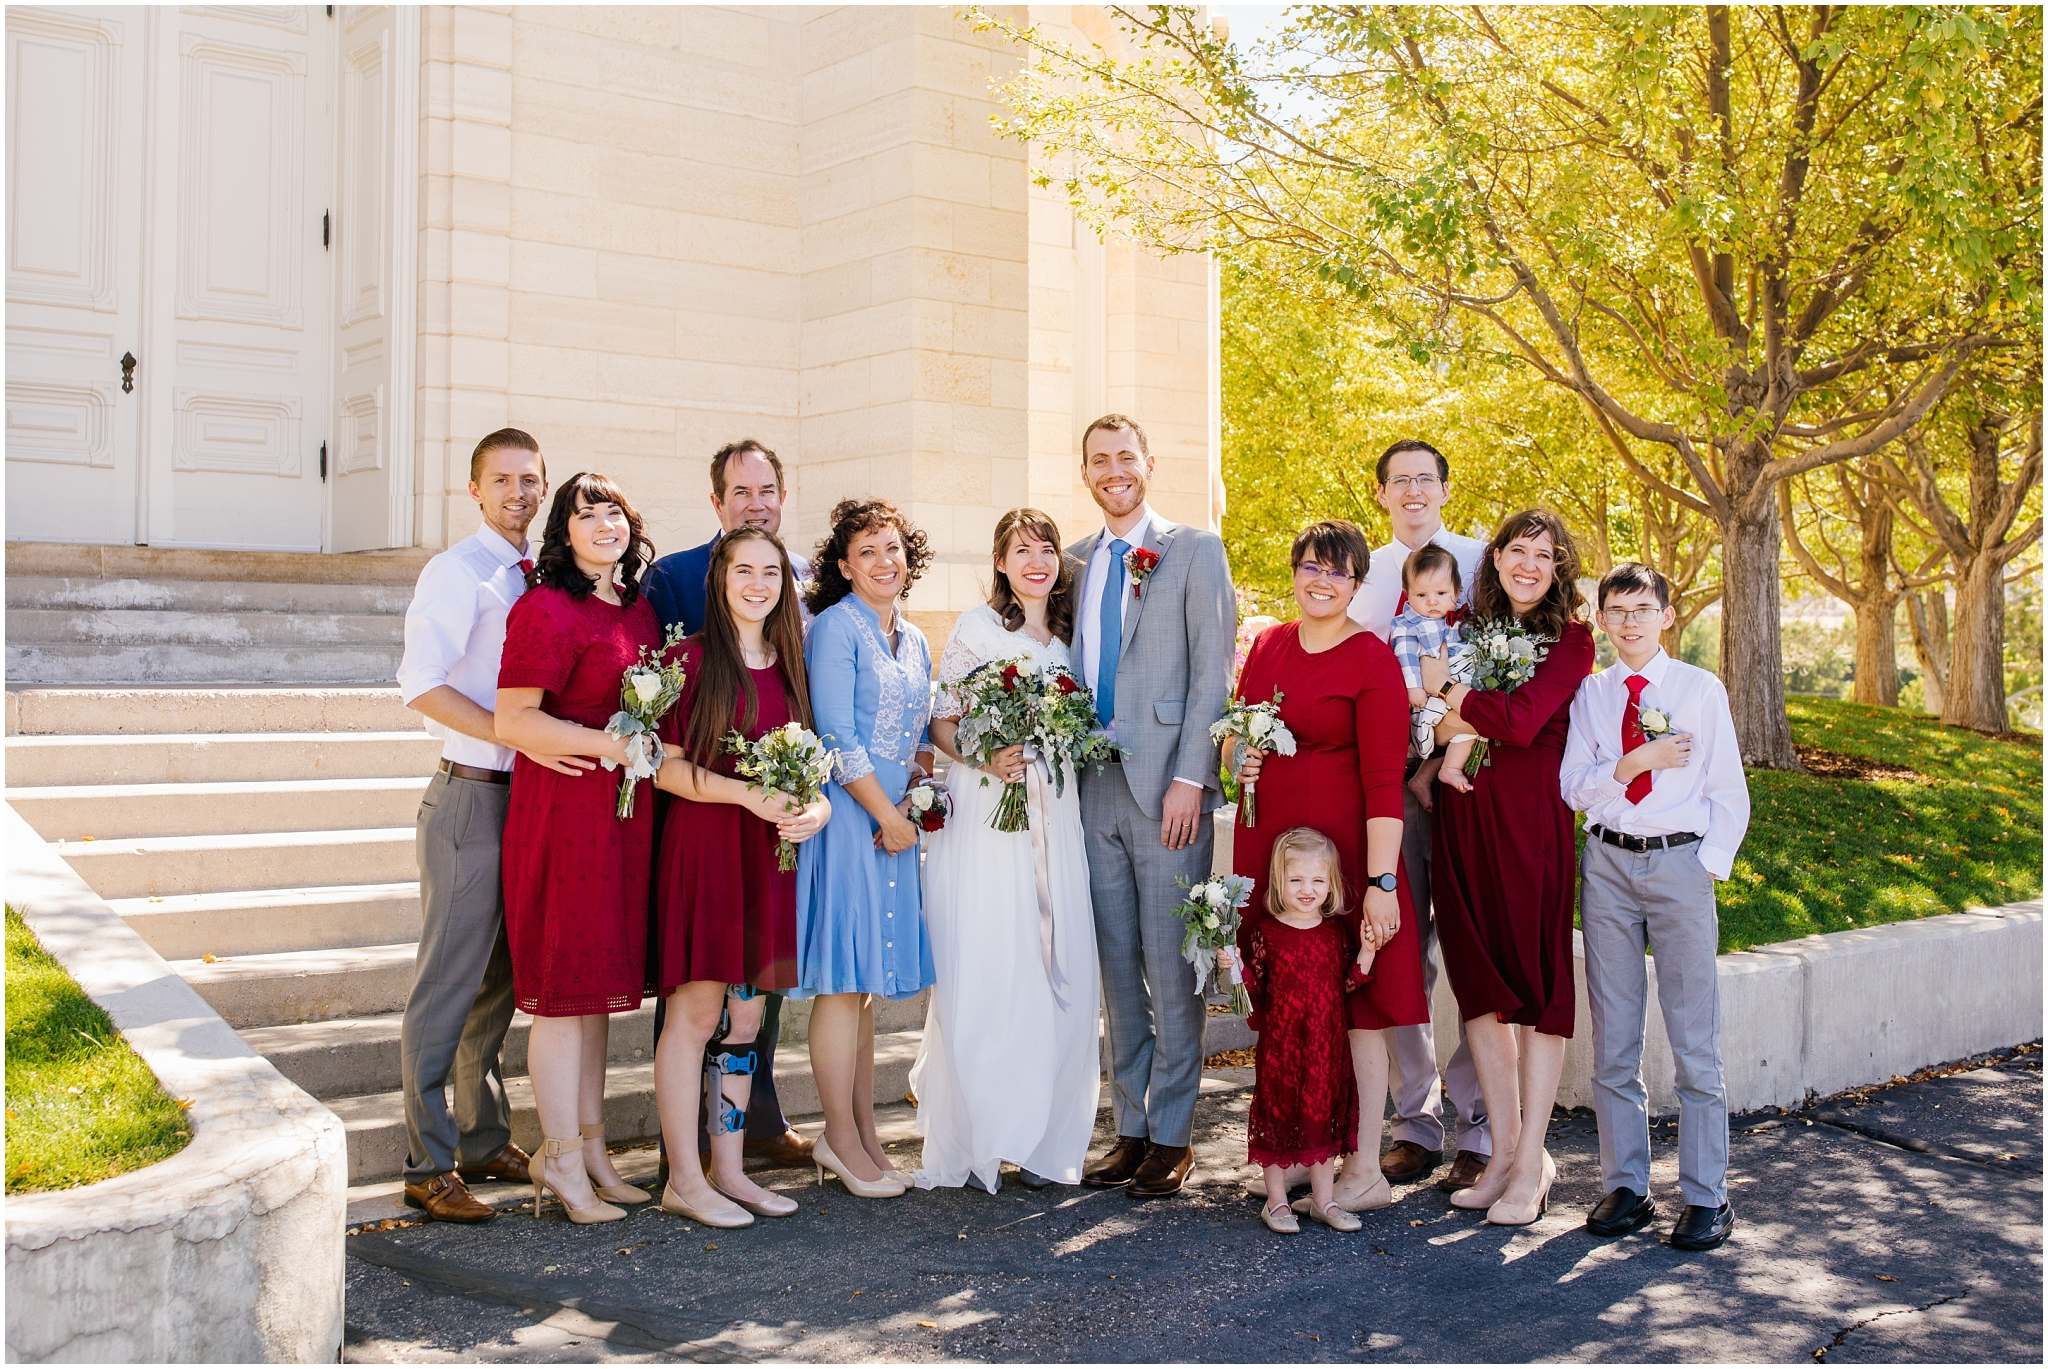 BrynneWinston-23_Lizzie-B-Imagery-Utah-Wedding-Photographer-Utah-County-Manti-Temple.jpg